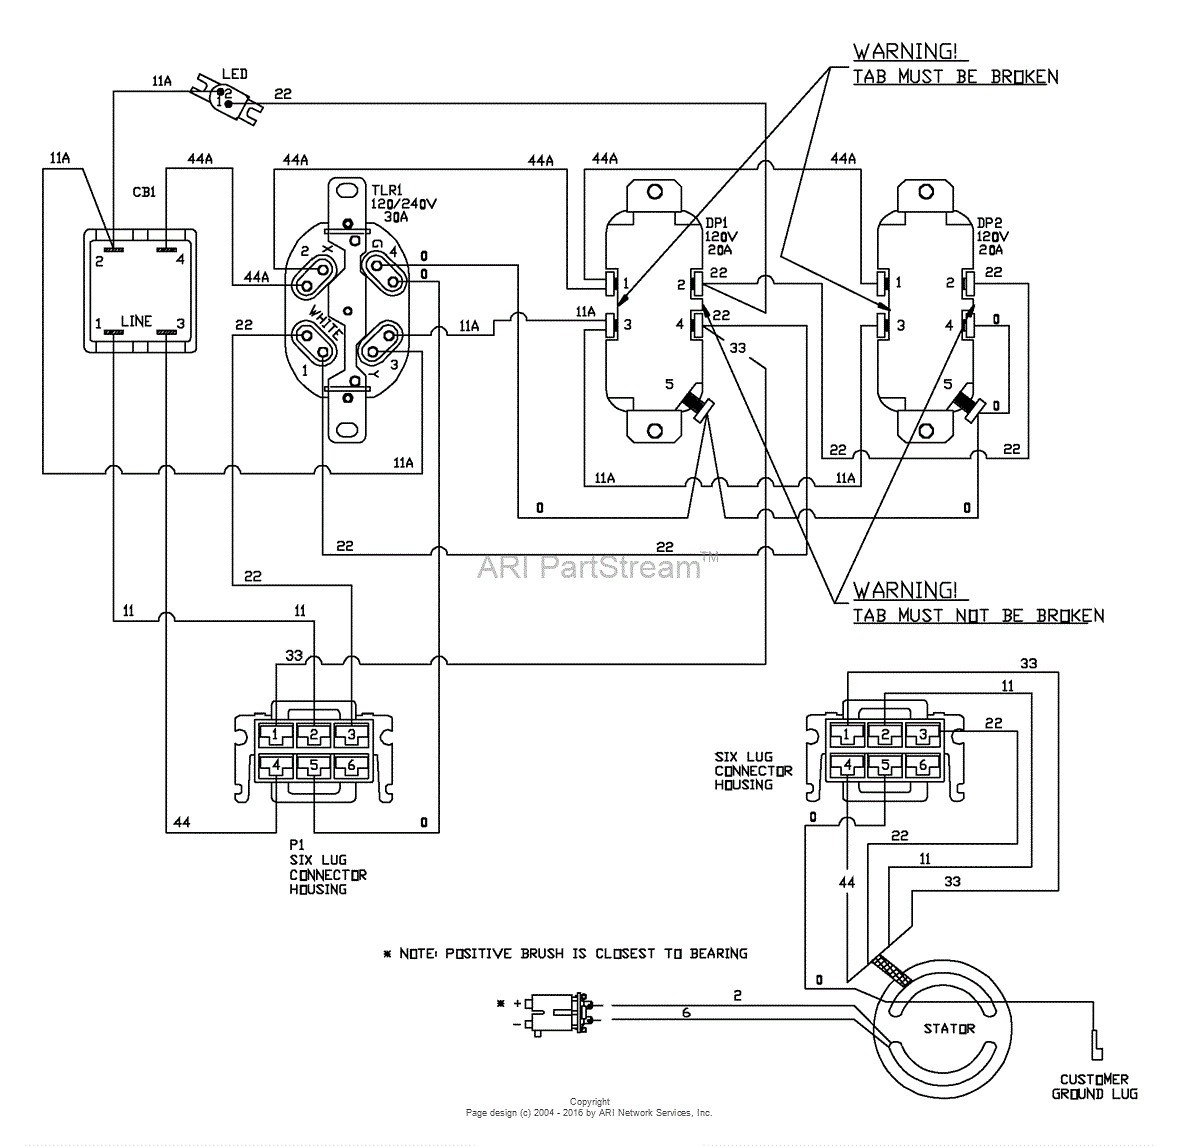 M Alternator Wiring Diagram on alternator generator, gm alternator diagram, how alternator works diagram, alternator engine diagram, alternator charging system, alternator plug diagram, toyota alternator diagram, alex anderson alternator diagram, alternator parts, alternator relay diagram, 13av60kg011 parts diagram, ford alternator diagram, alternator replacement, alternator winding diagram, alternator fuse diagram, ac compressor wire diagram, generator diagram, dodge alternator diagram, alternator connector diagram, car alternator diagram,